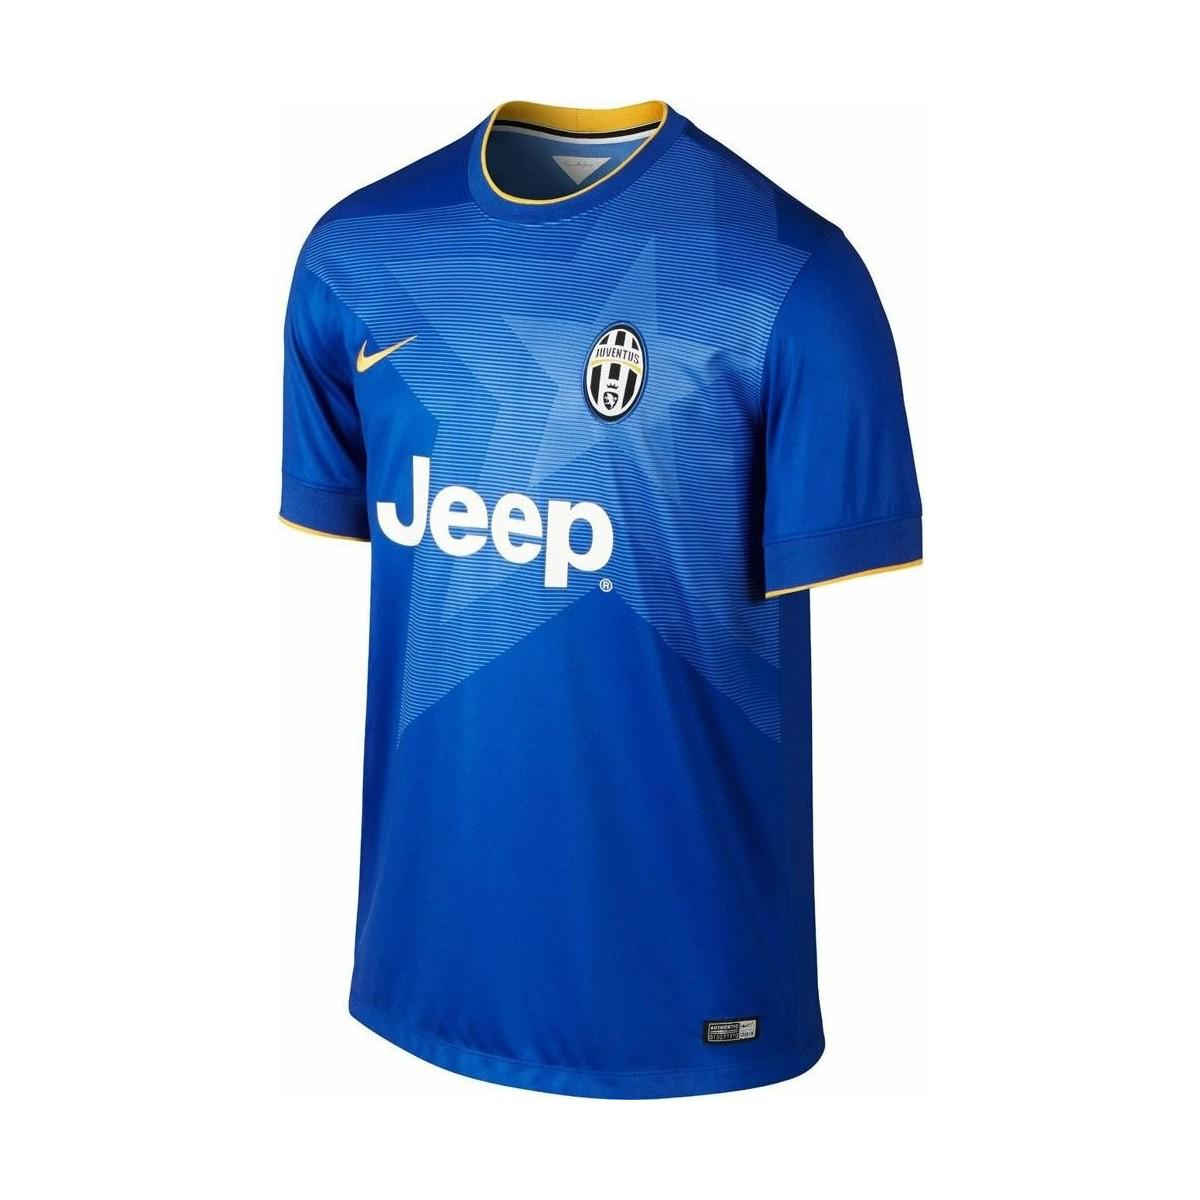 buy online 6b09b 201b0 Nike 2014-15 Juventus Away Shirt (pogba 6) Men's T Shirt In ...